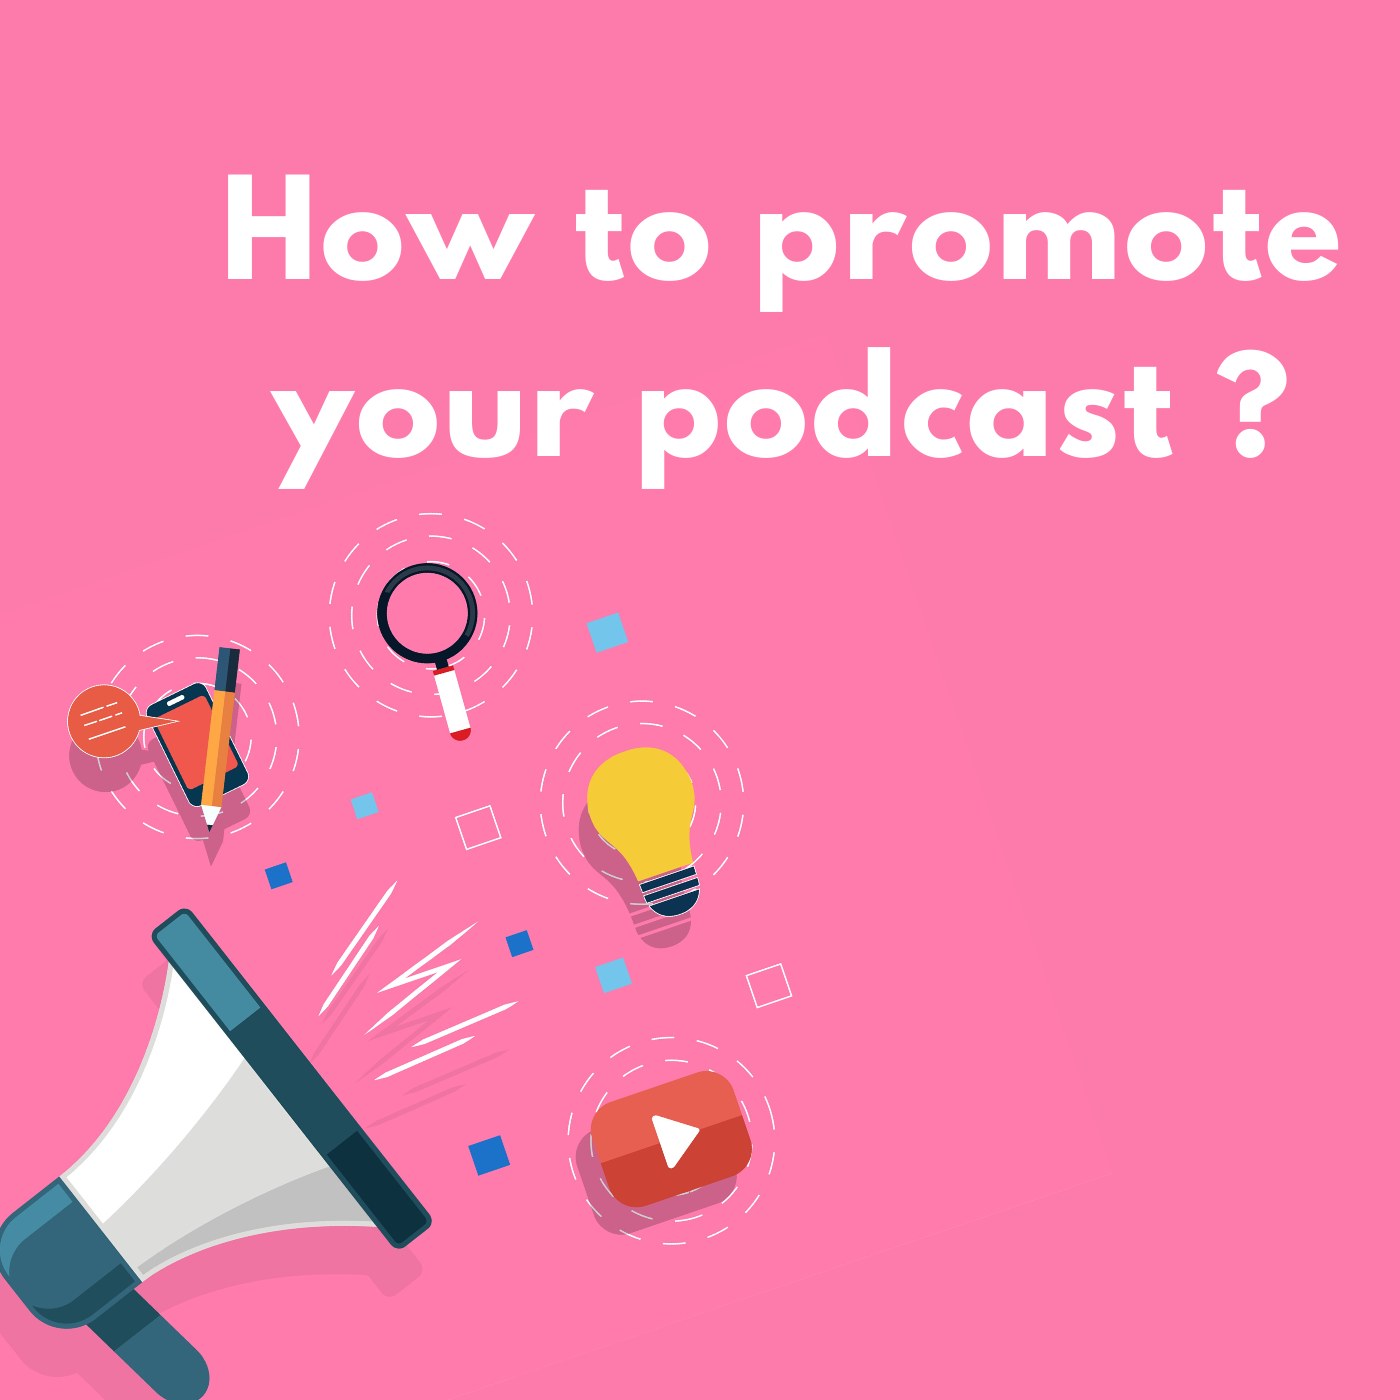 How to promote your podcast?